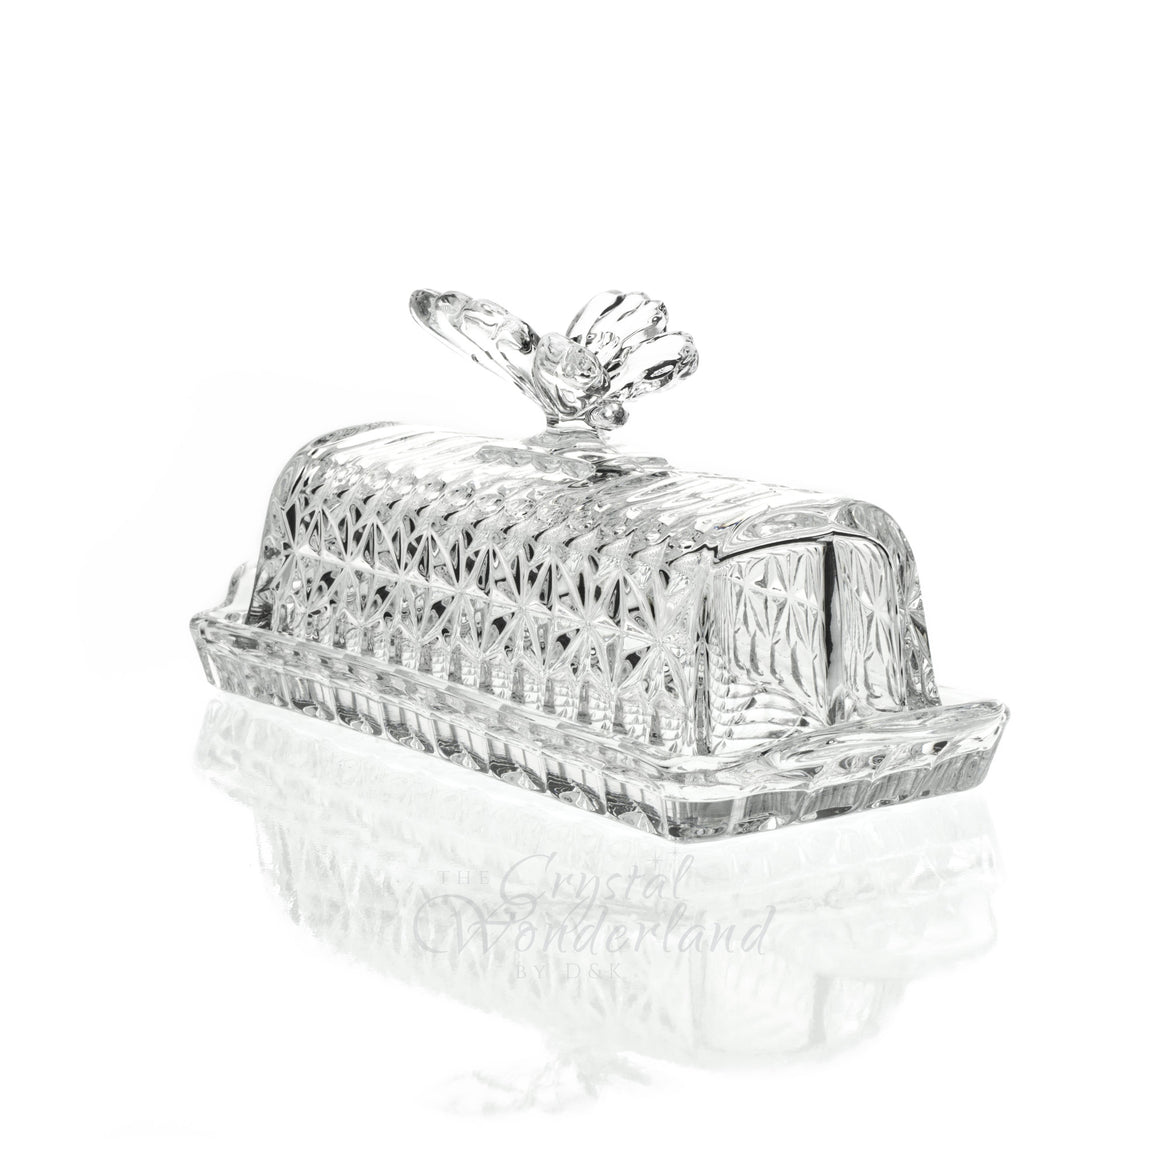 Crystal Butter Tray - The Crystal Wonderland